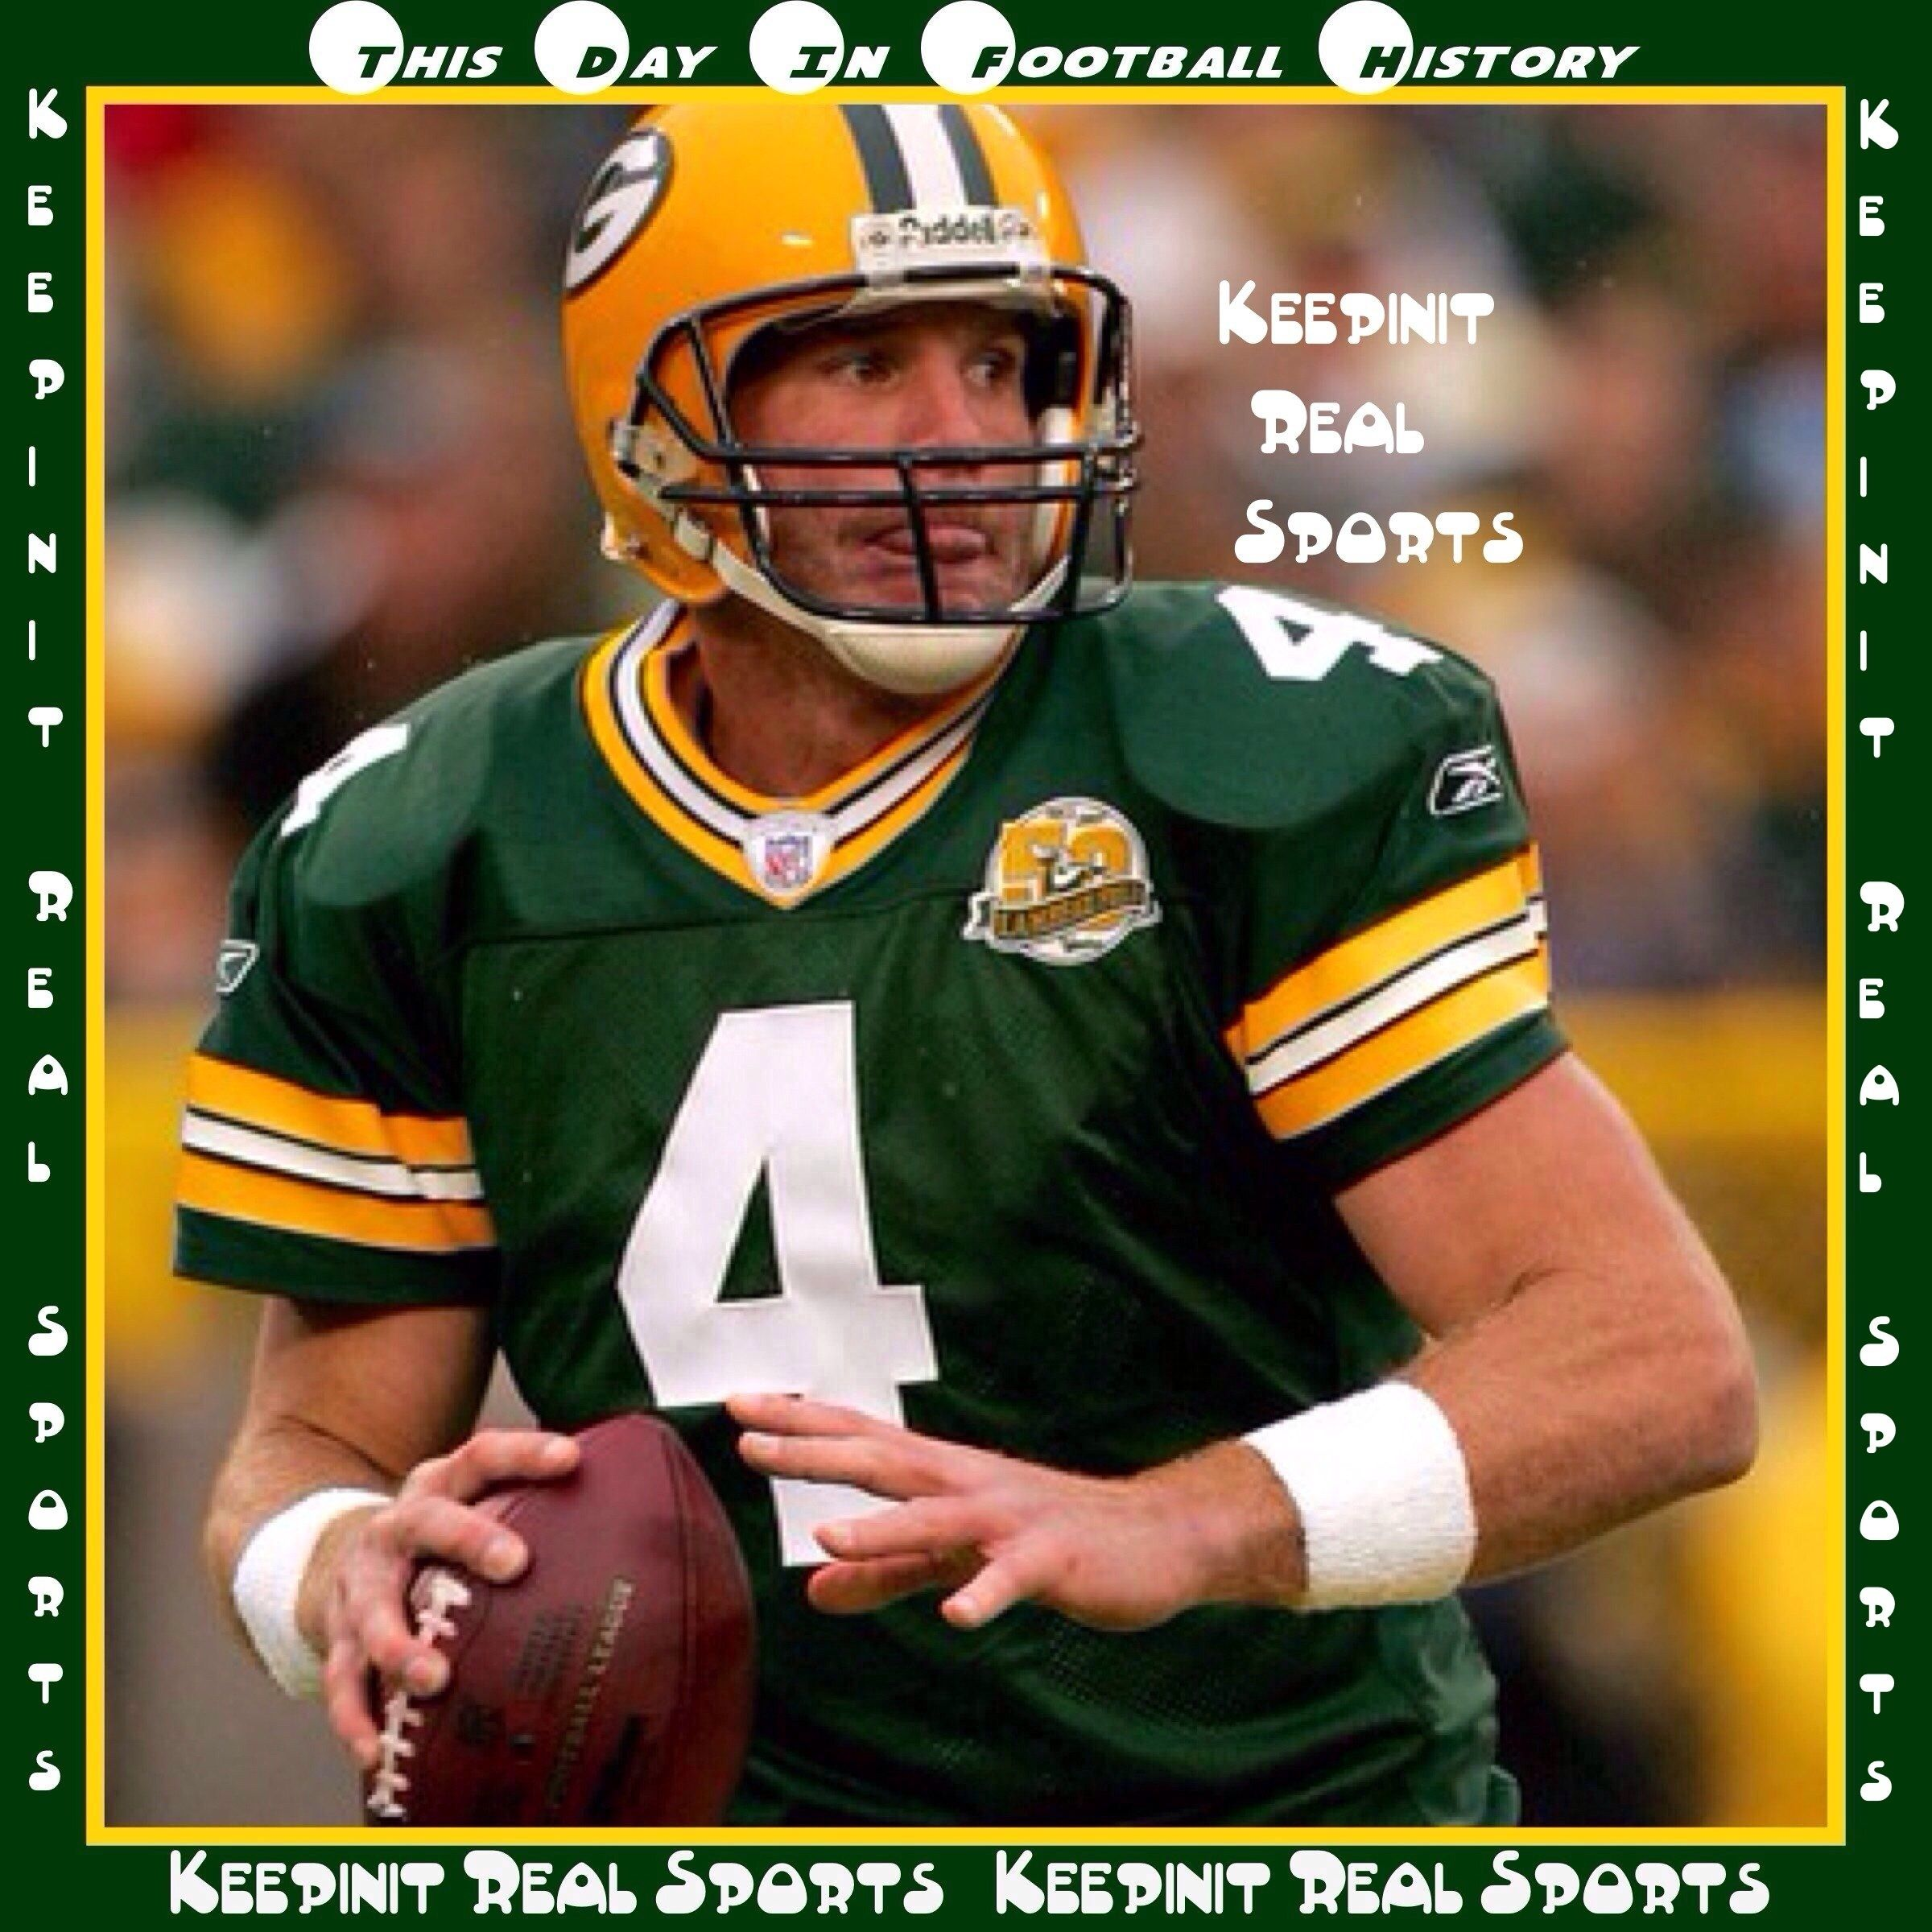 This Day In Football History December 20 1998 Brett Favre Green Bay Packers Became Th Green Bay Packers Fans Green Bay Packers Green Bay Packers Football